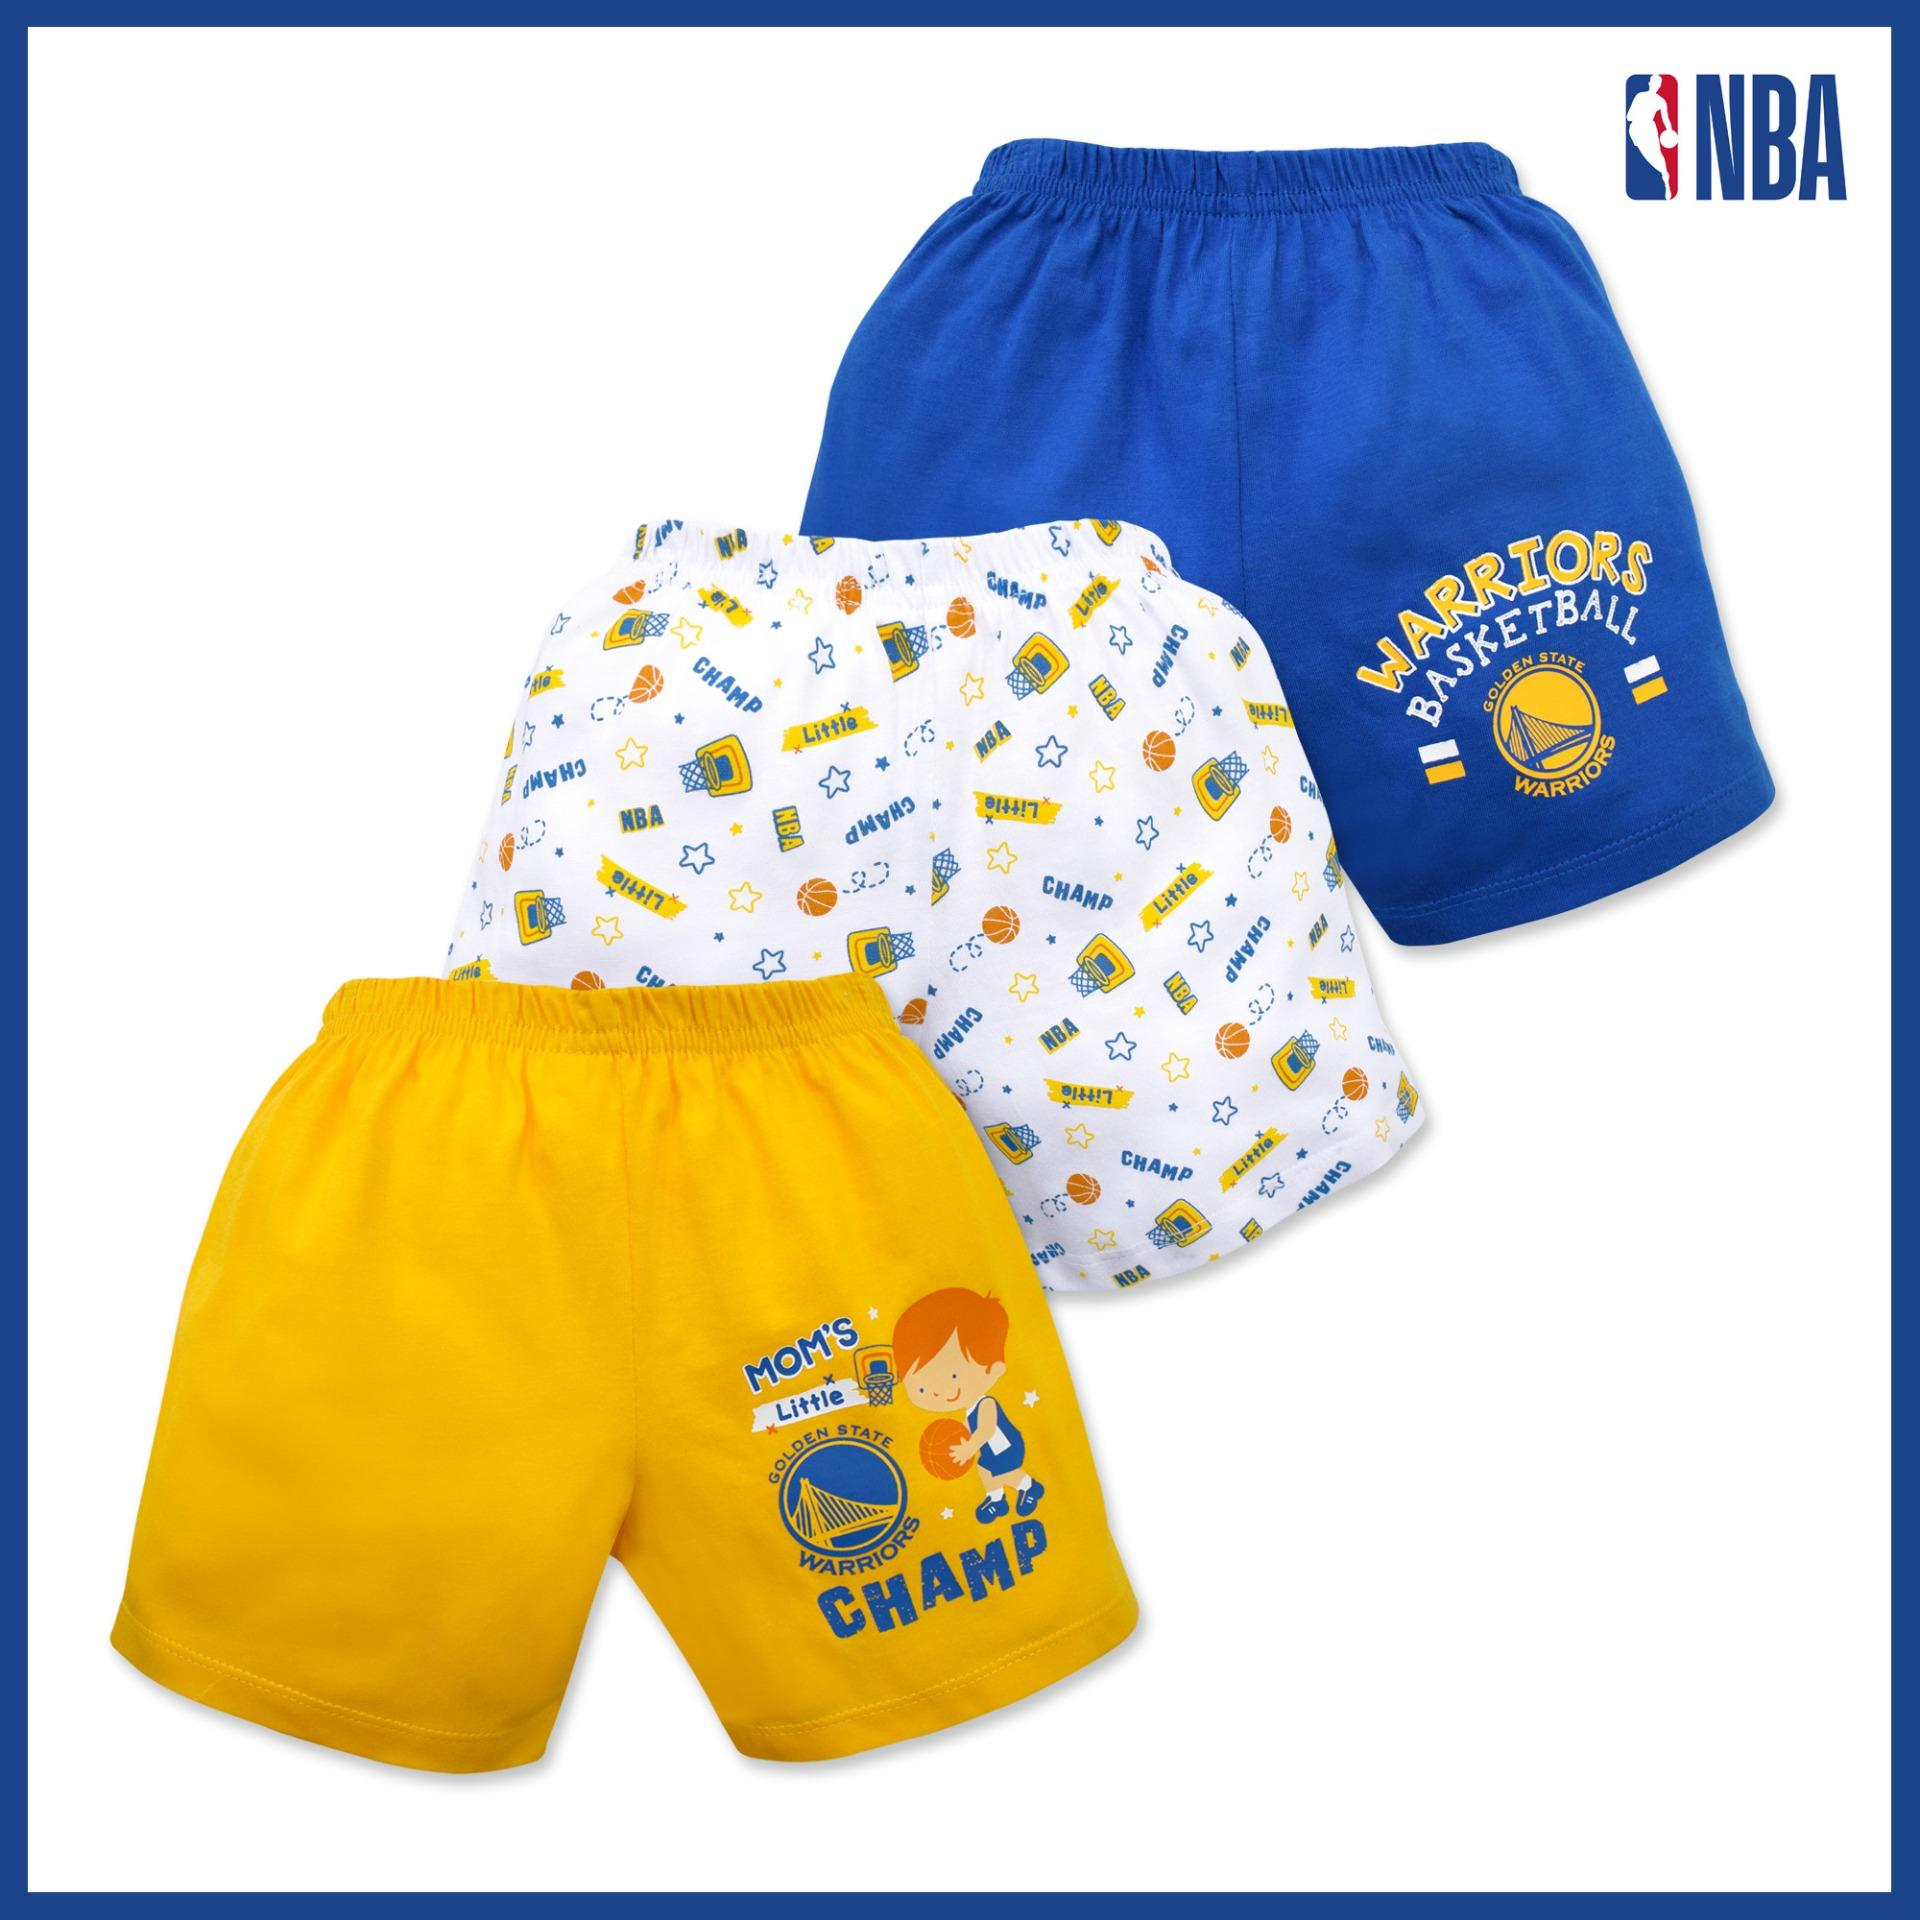 Nba Baby - 3-Piece Shorts (moms Little Champ - Warriors) By Cotton Stuff.